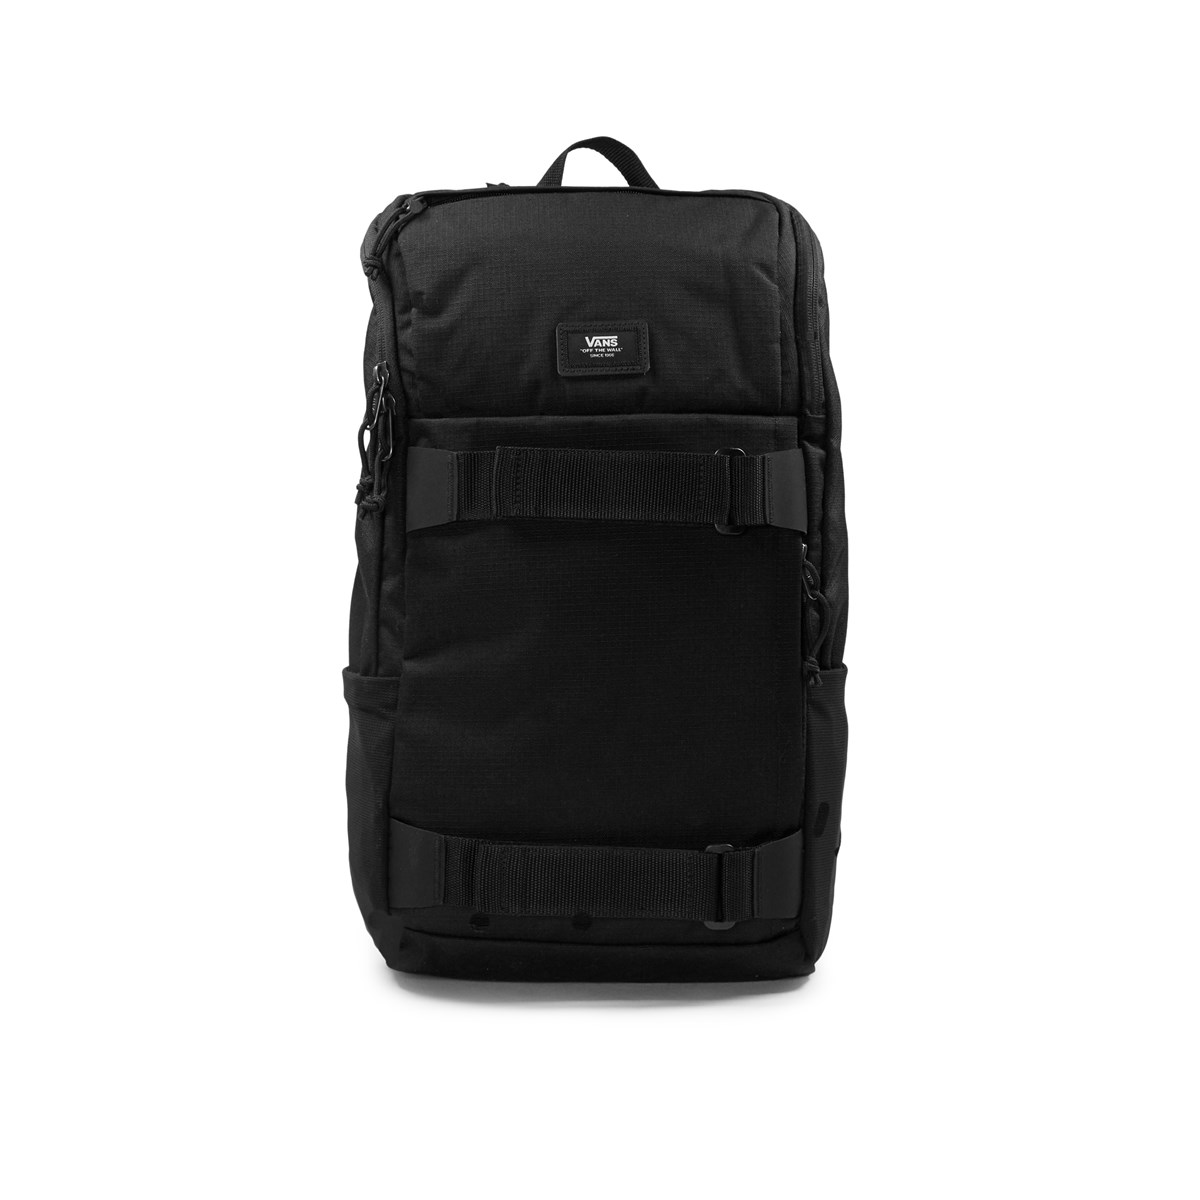 Obstacle Skatepack Backpack in Black